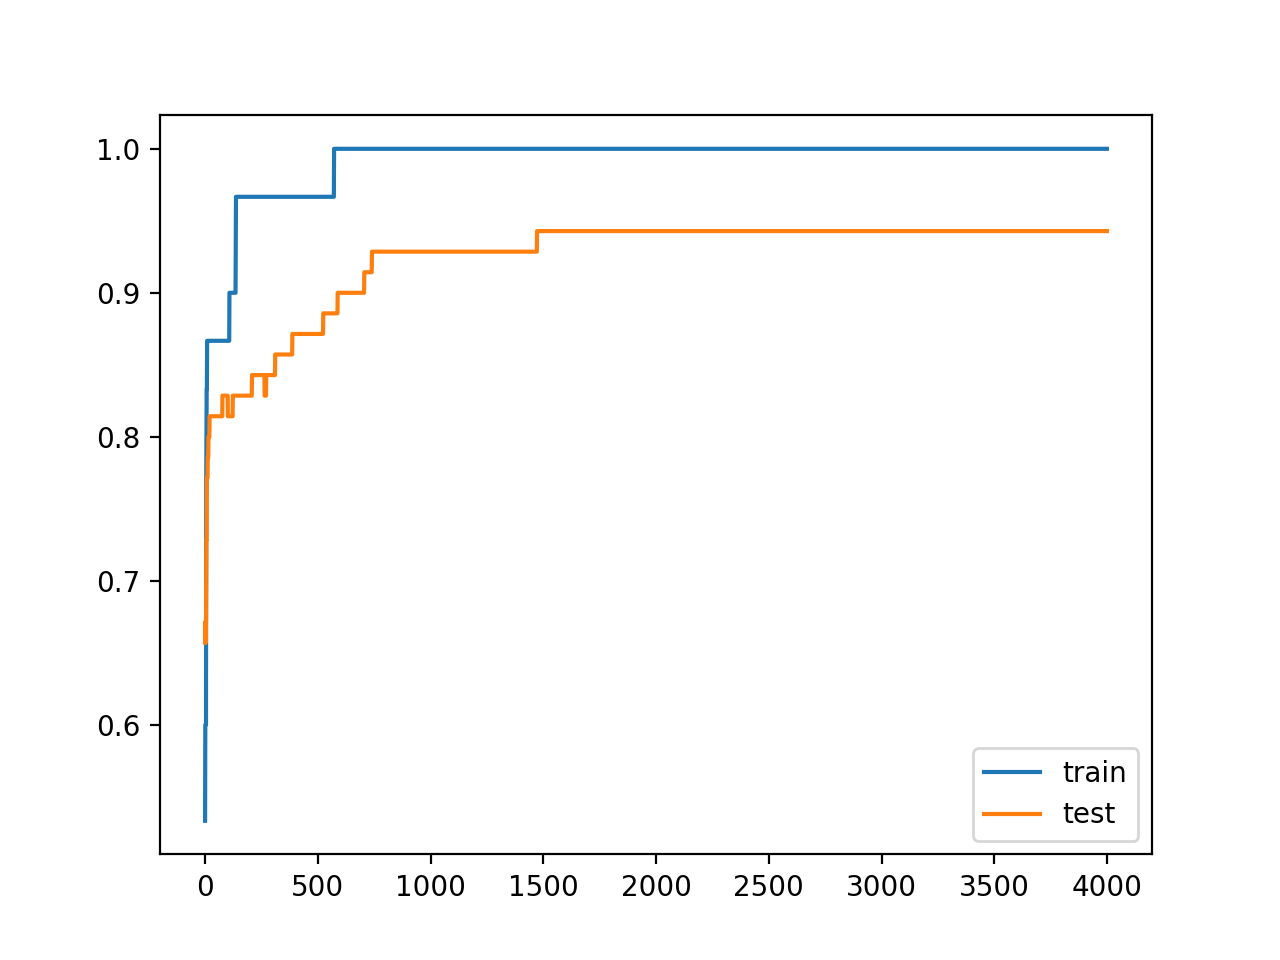 Line Plots of Accuracy on Train and Test Datasets While Training With Weight Constraints